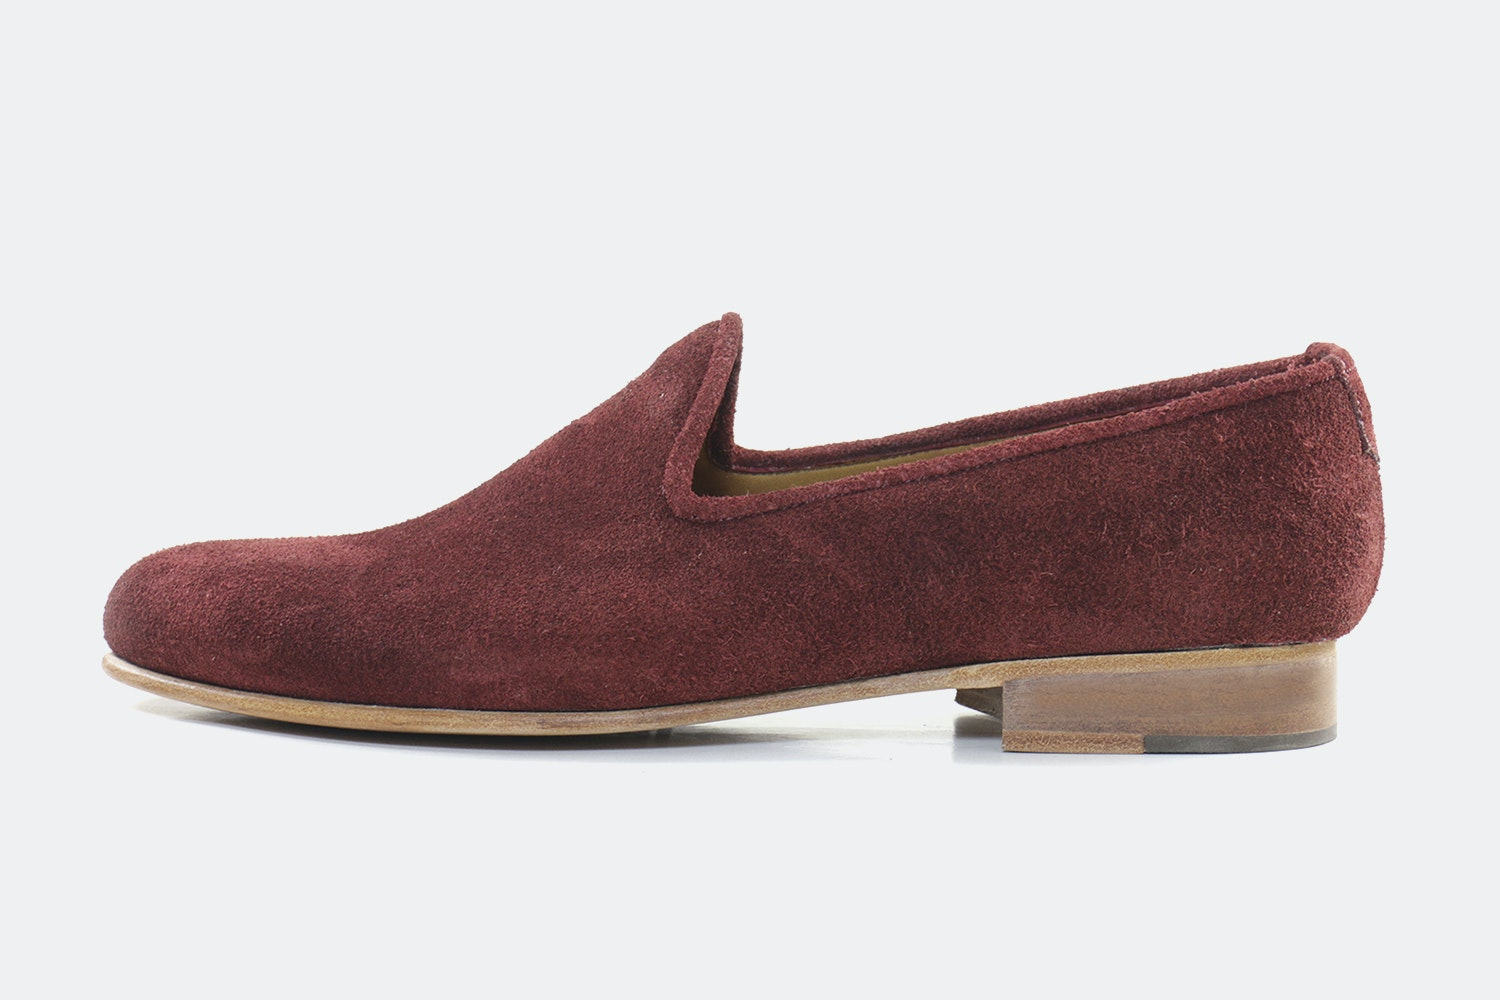 Vino Slippers - Burgundy